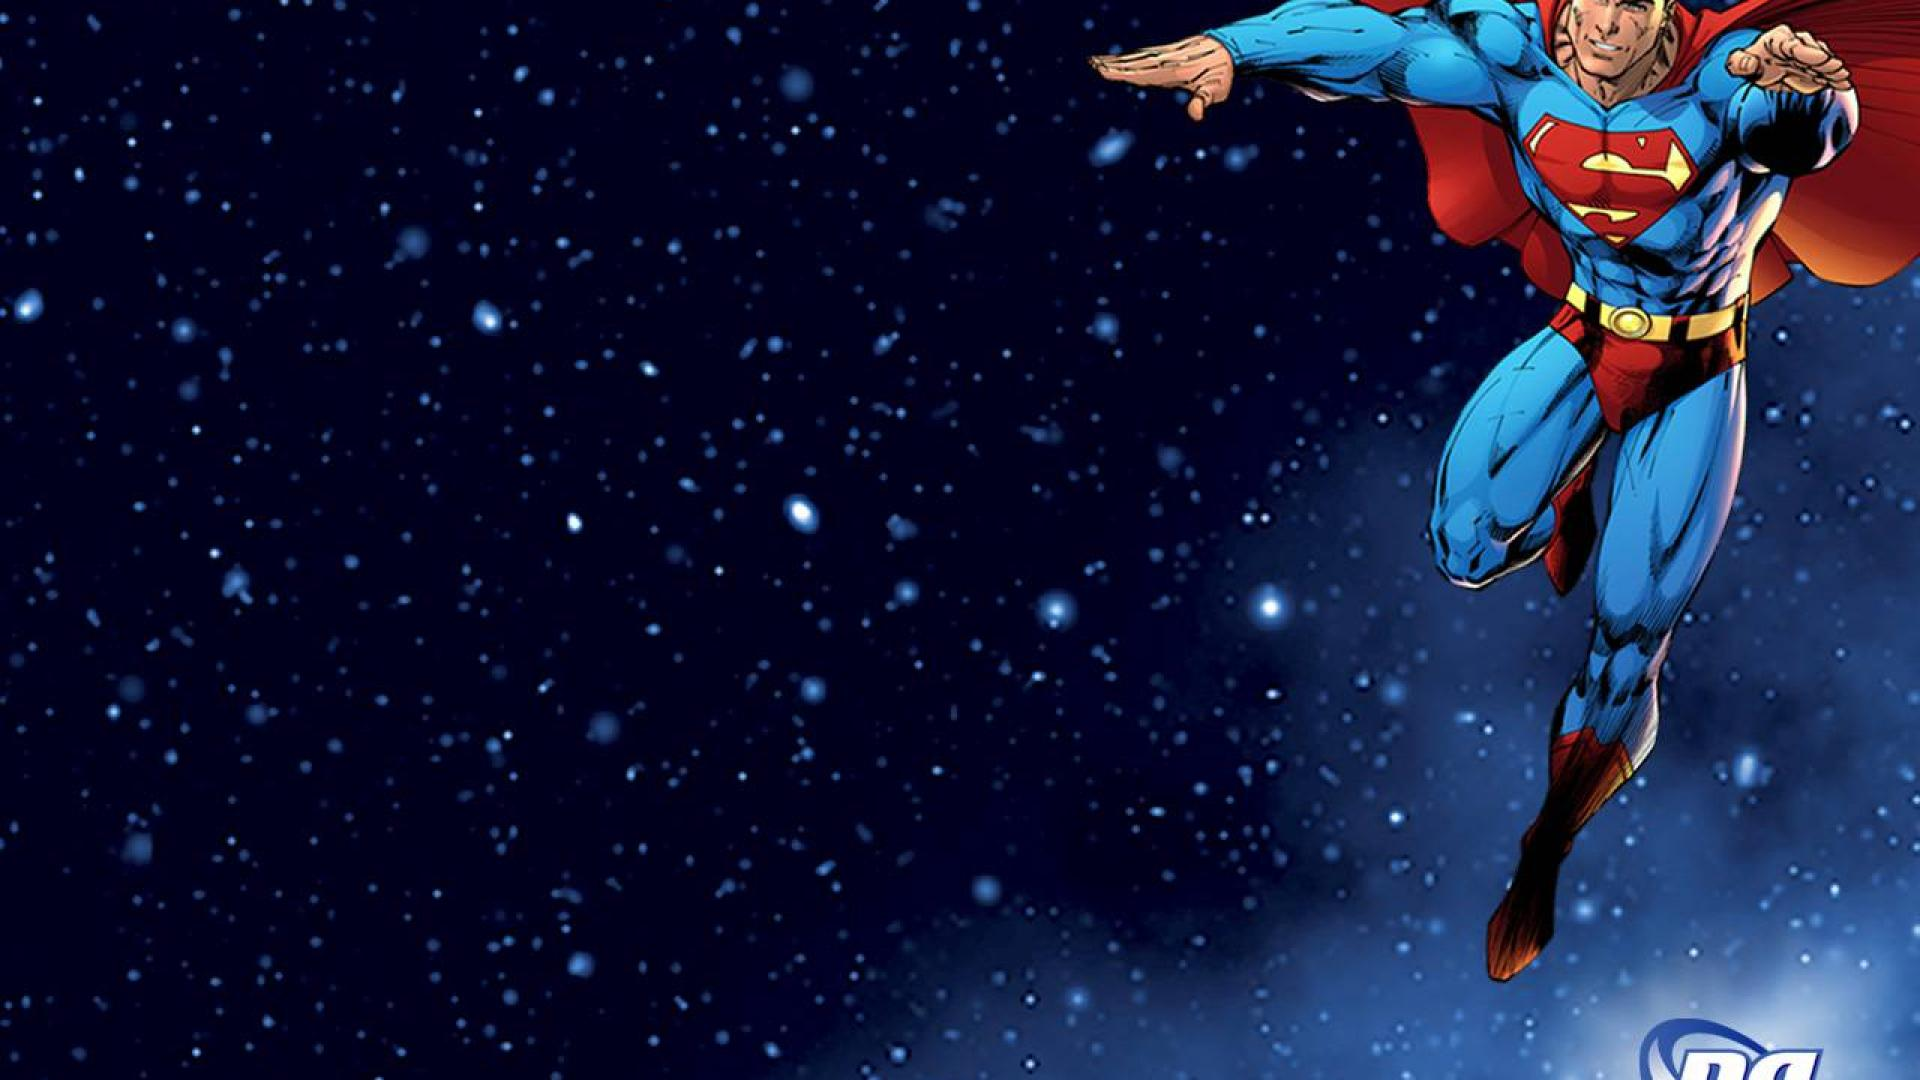 Dc comics superman wallpaper [2] HQ WALLPAPER   5973 1920x1080